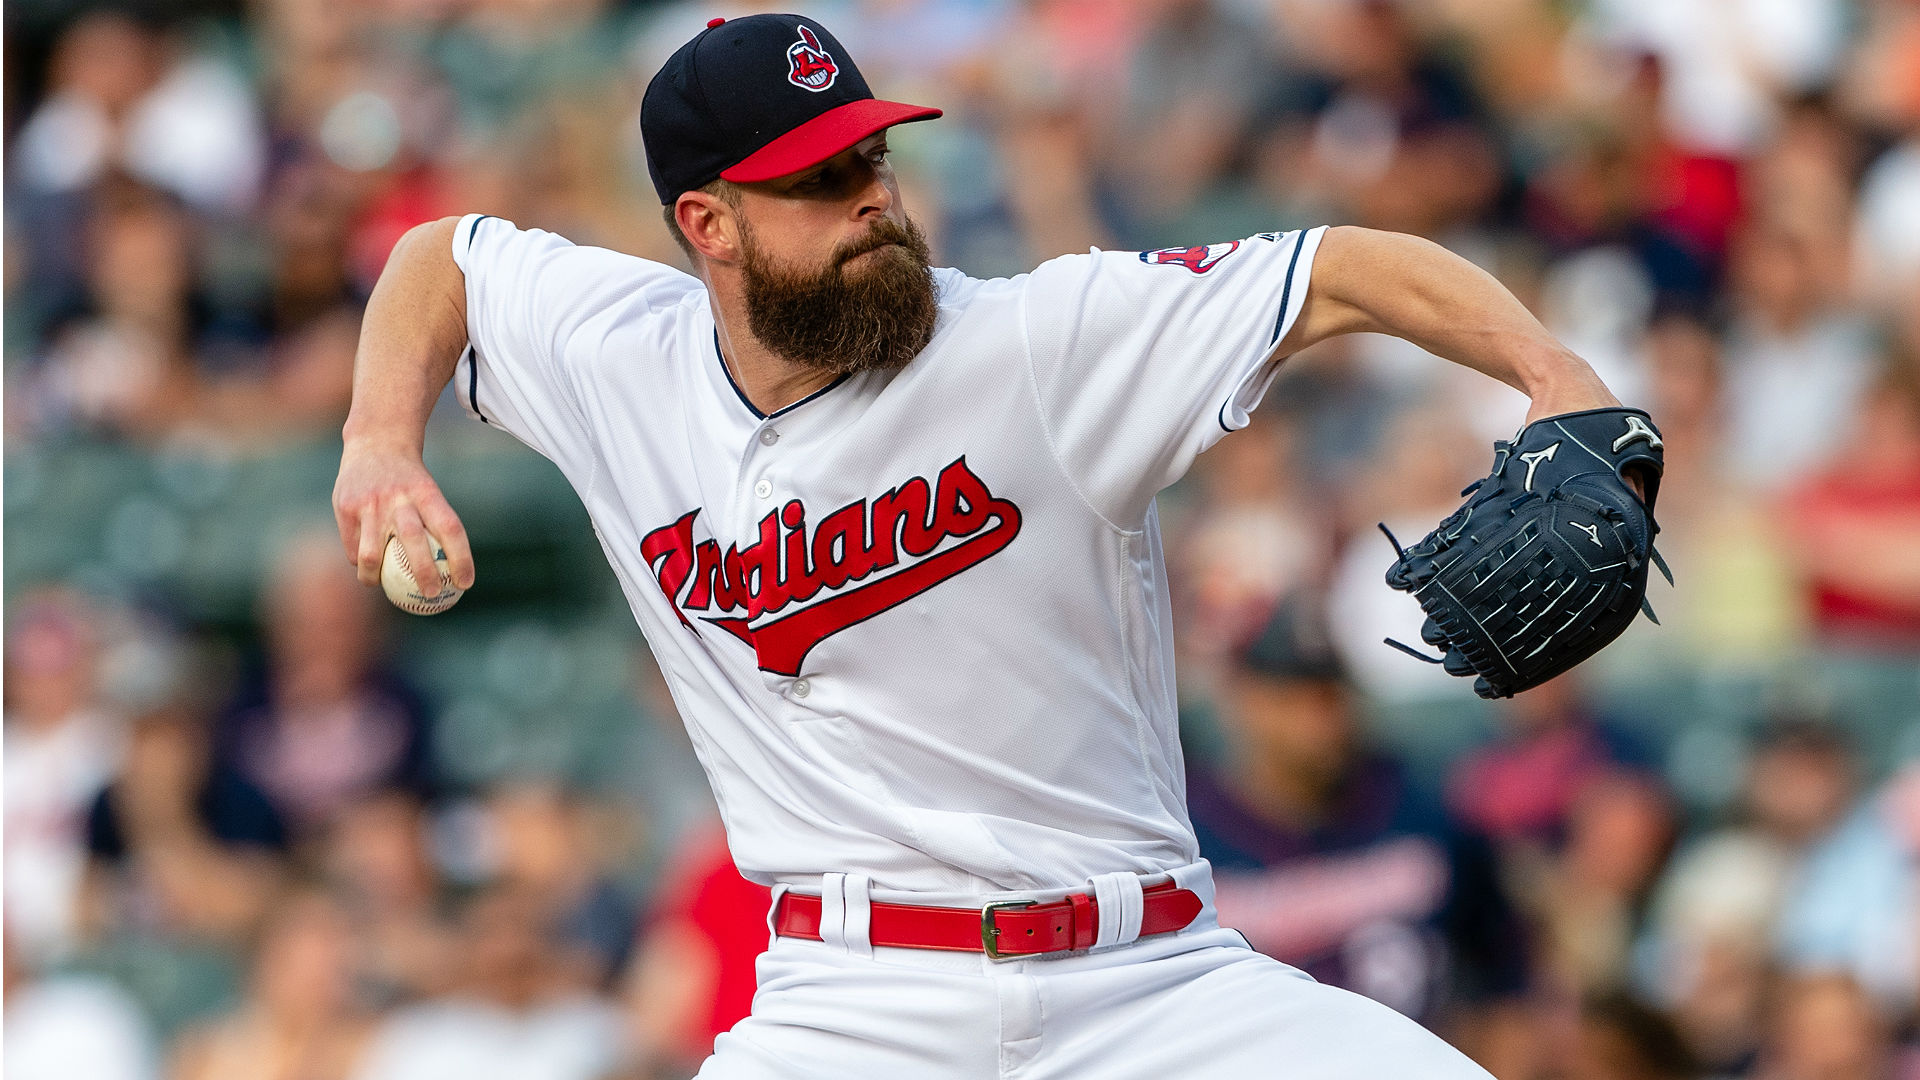 MLB trade rumors: Indians ace Corey Kluber not likely to be dealt